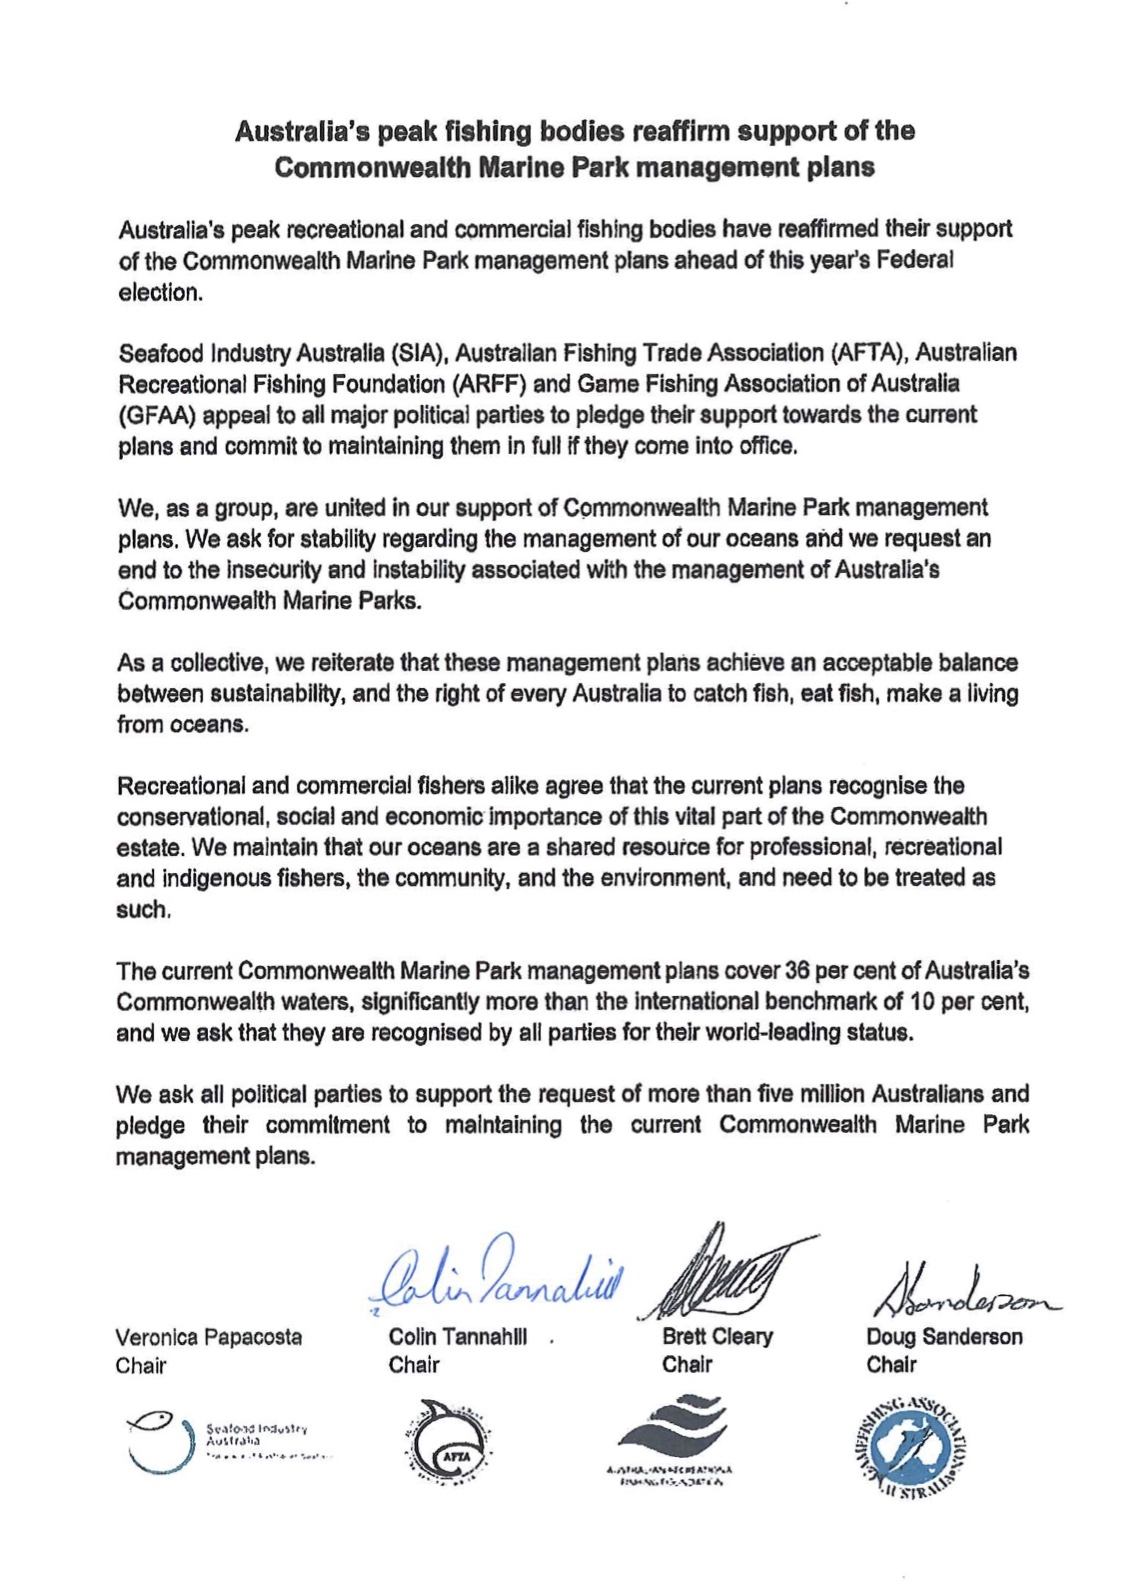 Joint Industry Letter to Tony Burke re: Commonwealth Marine Park Management Plan Changes